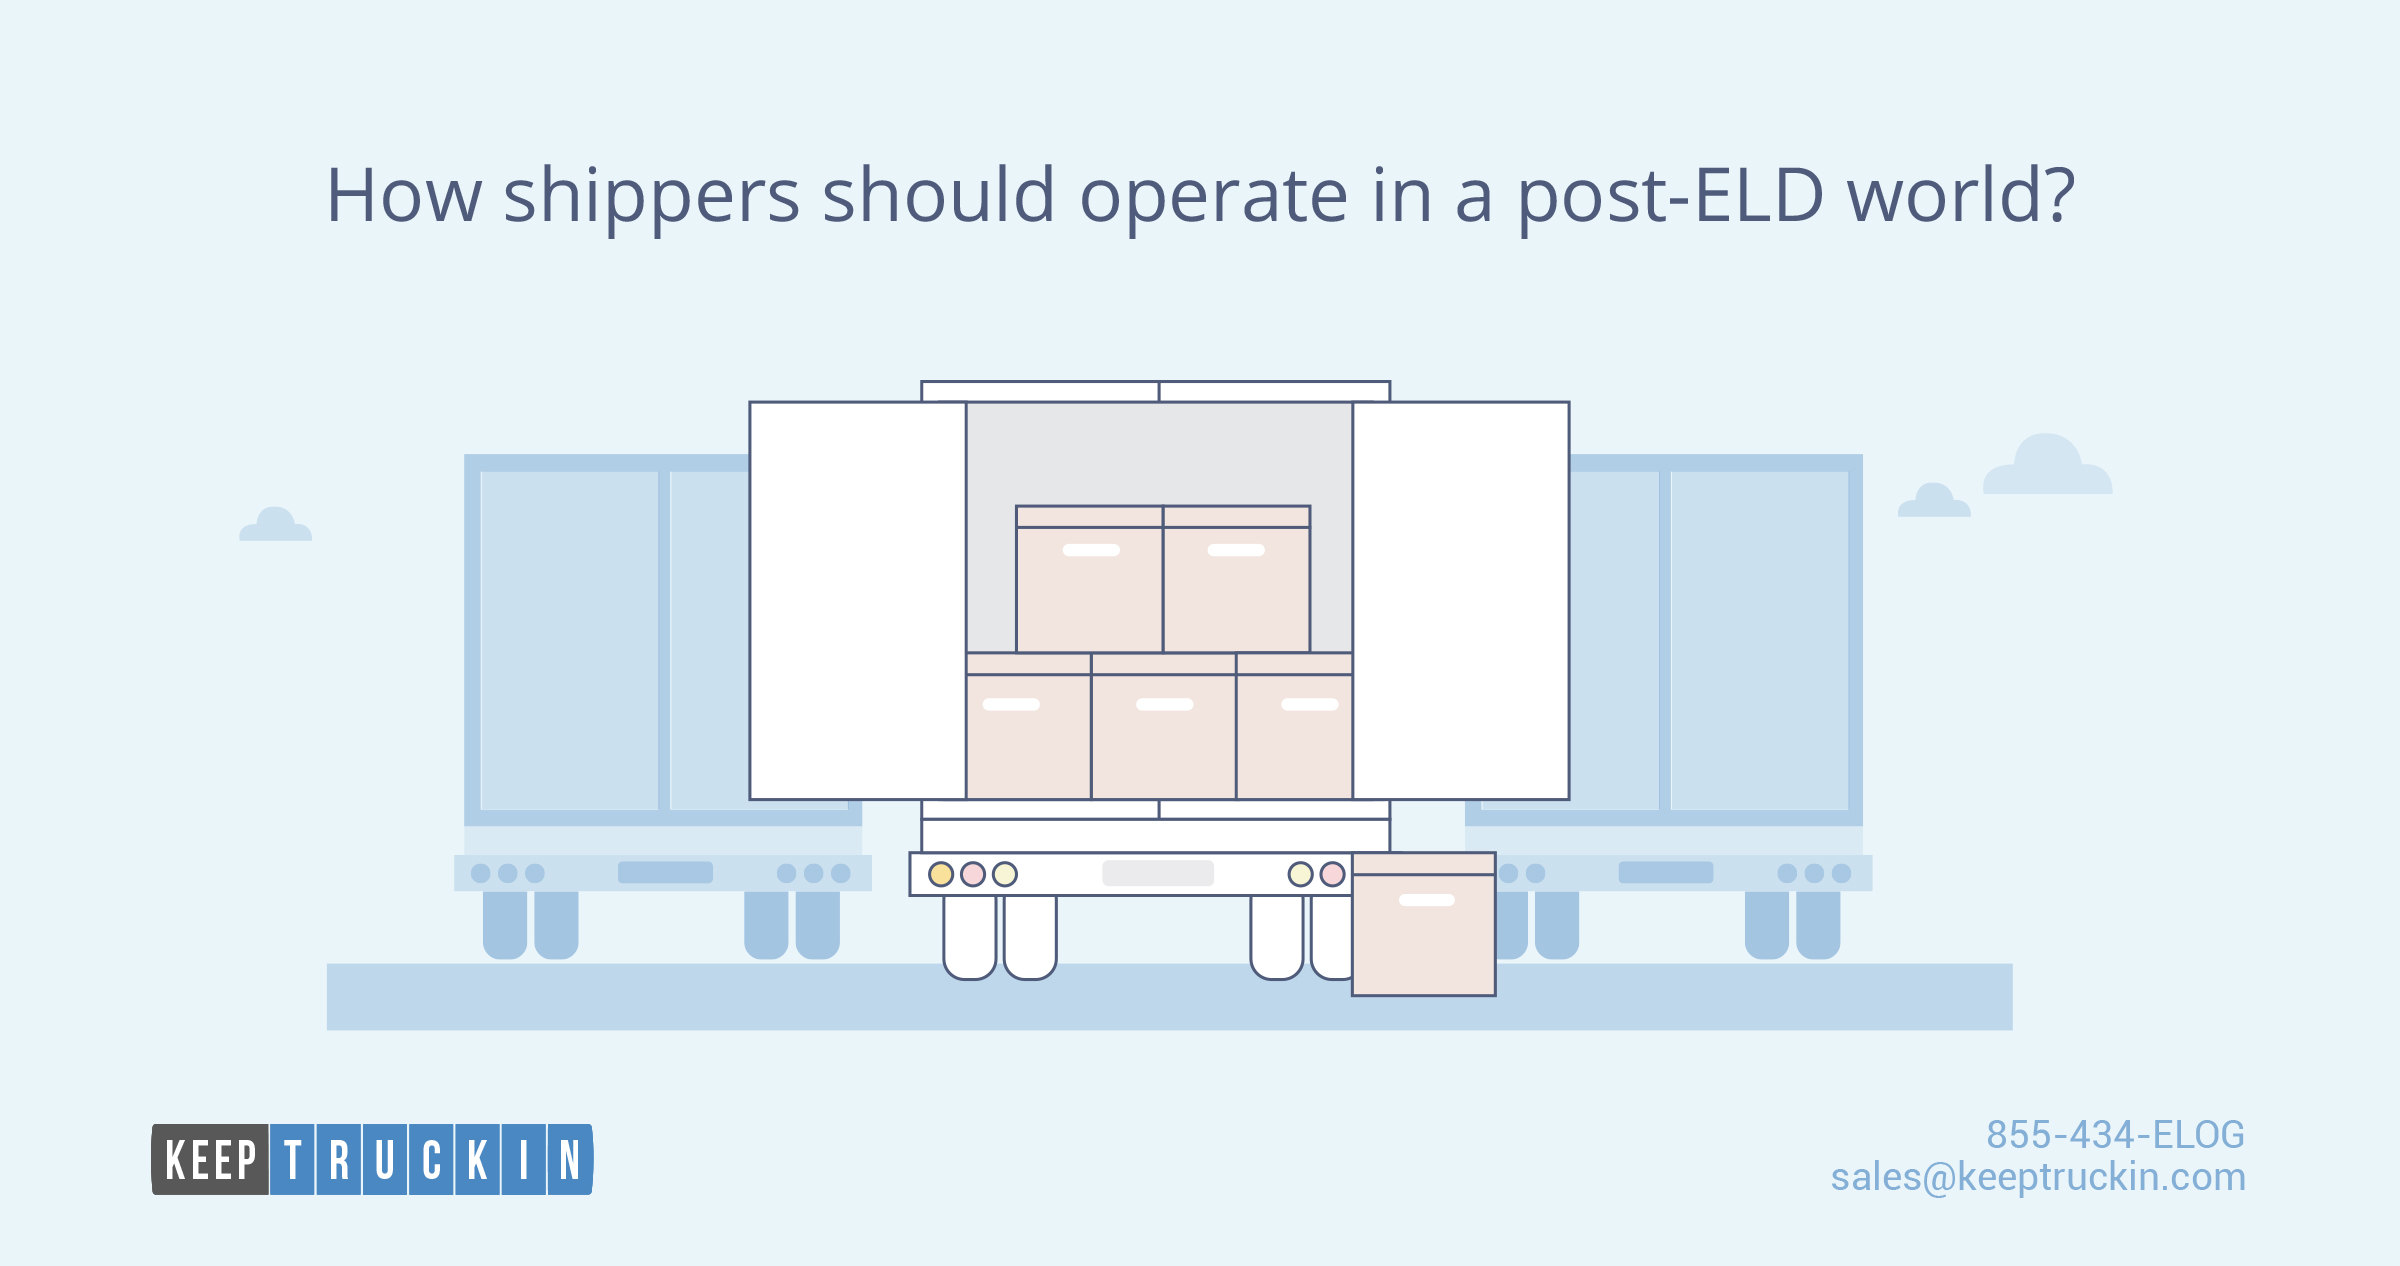 How shippers should operate in the post-ELD world